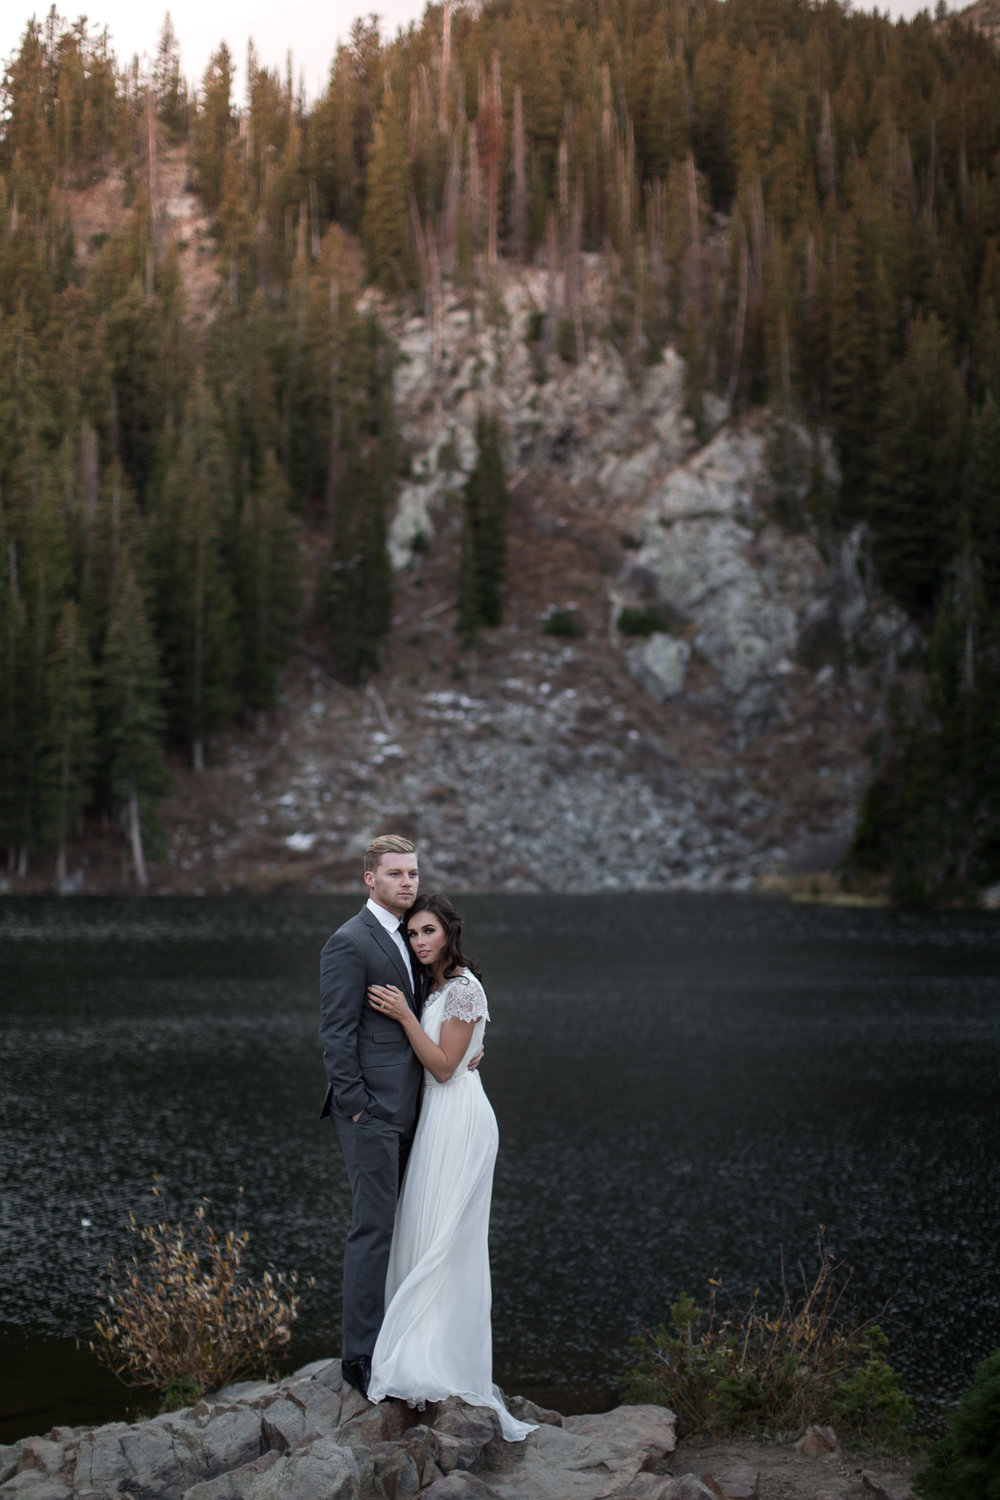 UtahValleyBrideShootTR2016 (25 of 110).jpg